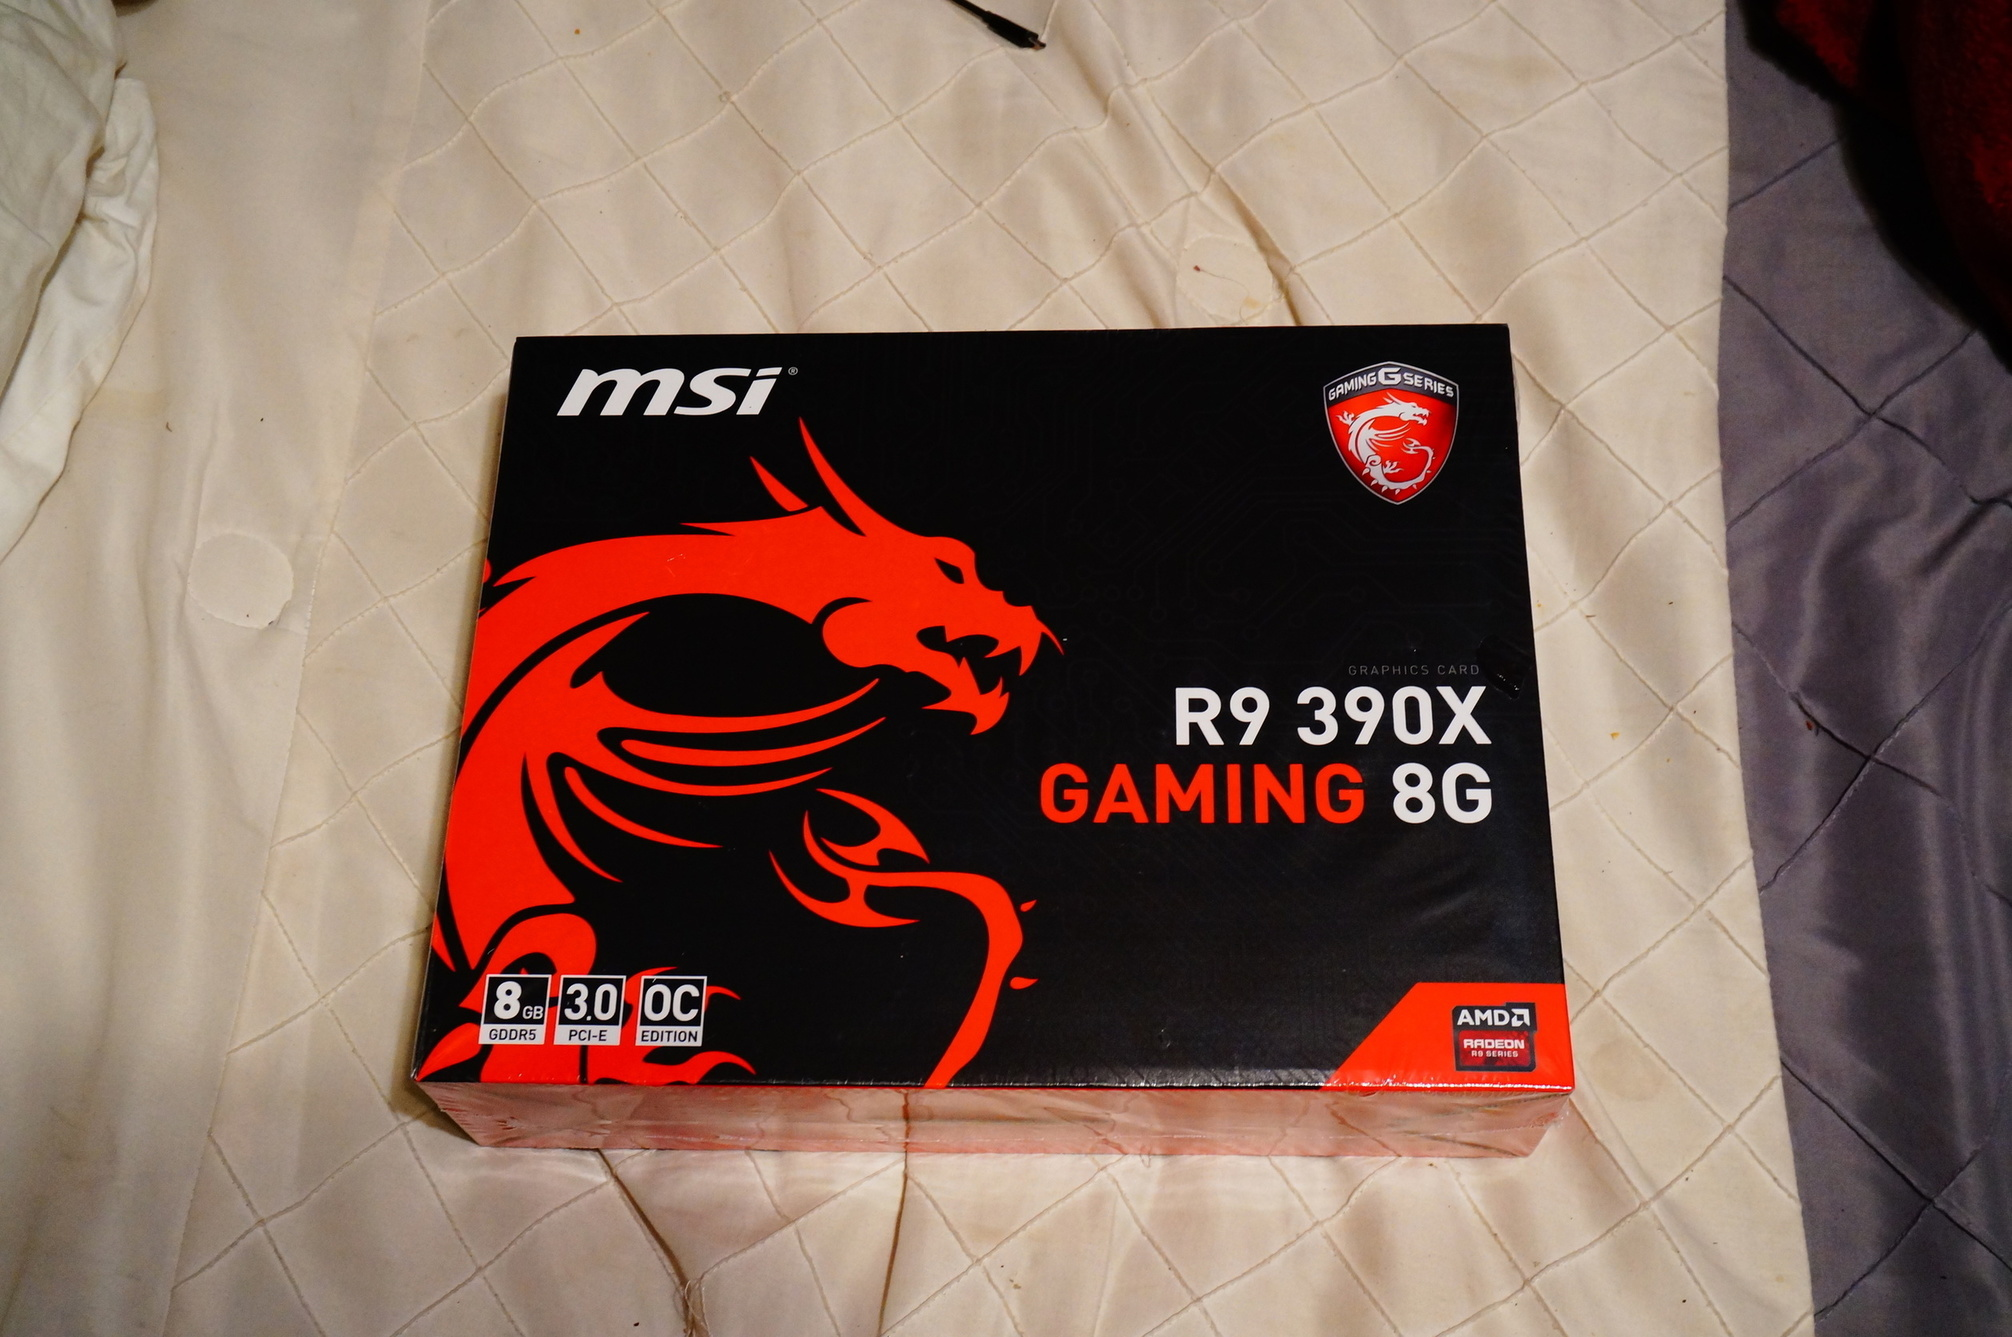 Updated: Card recieved ) I've been converted into an MSI